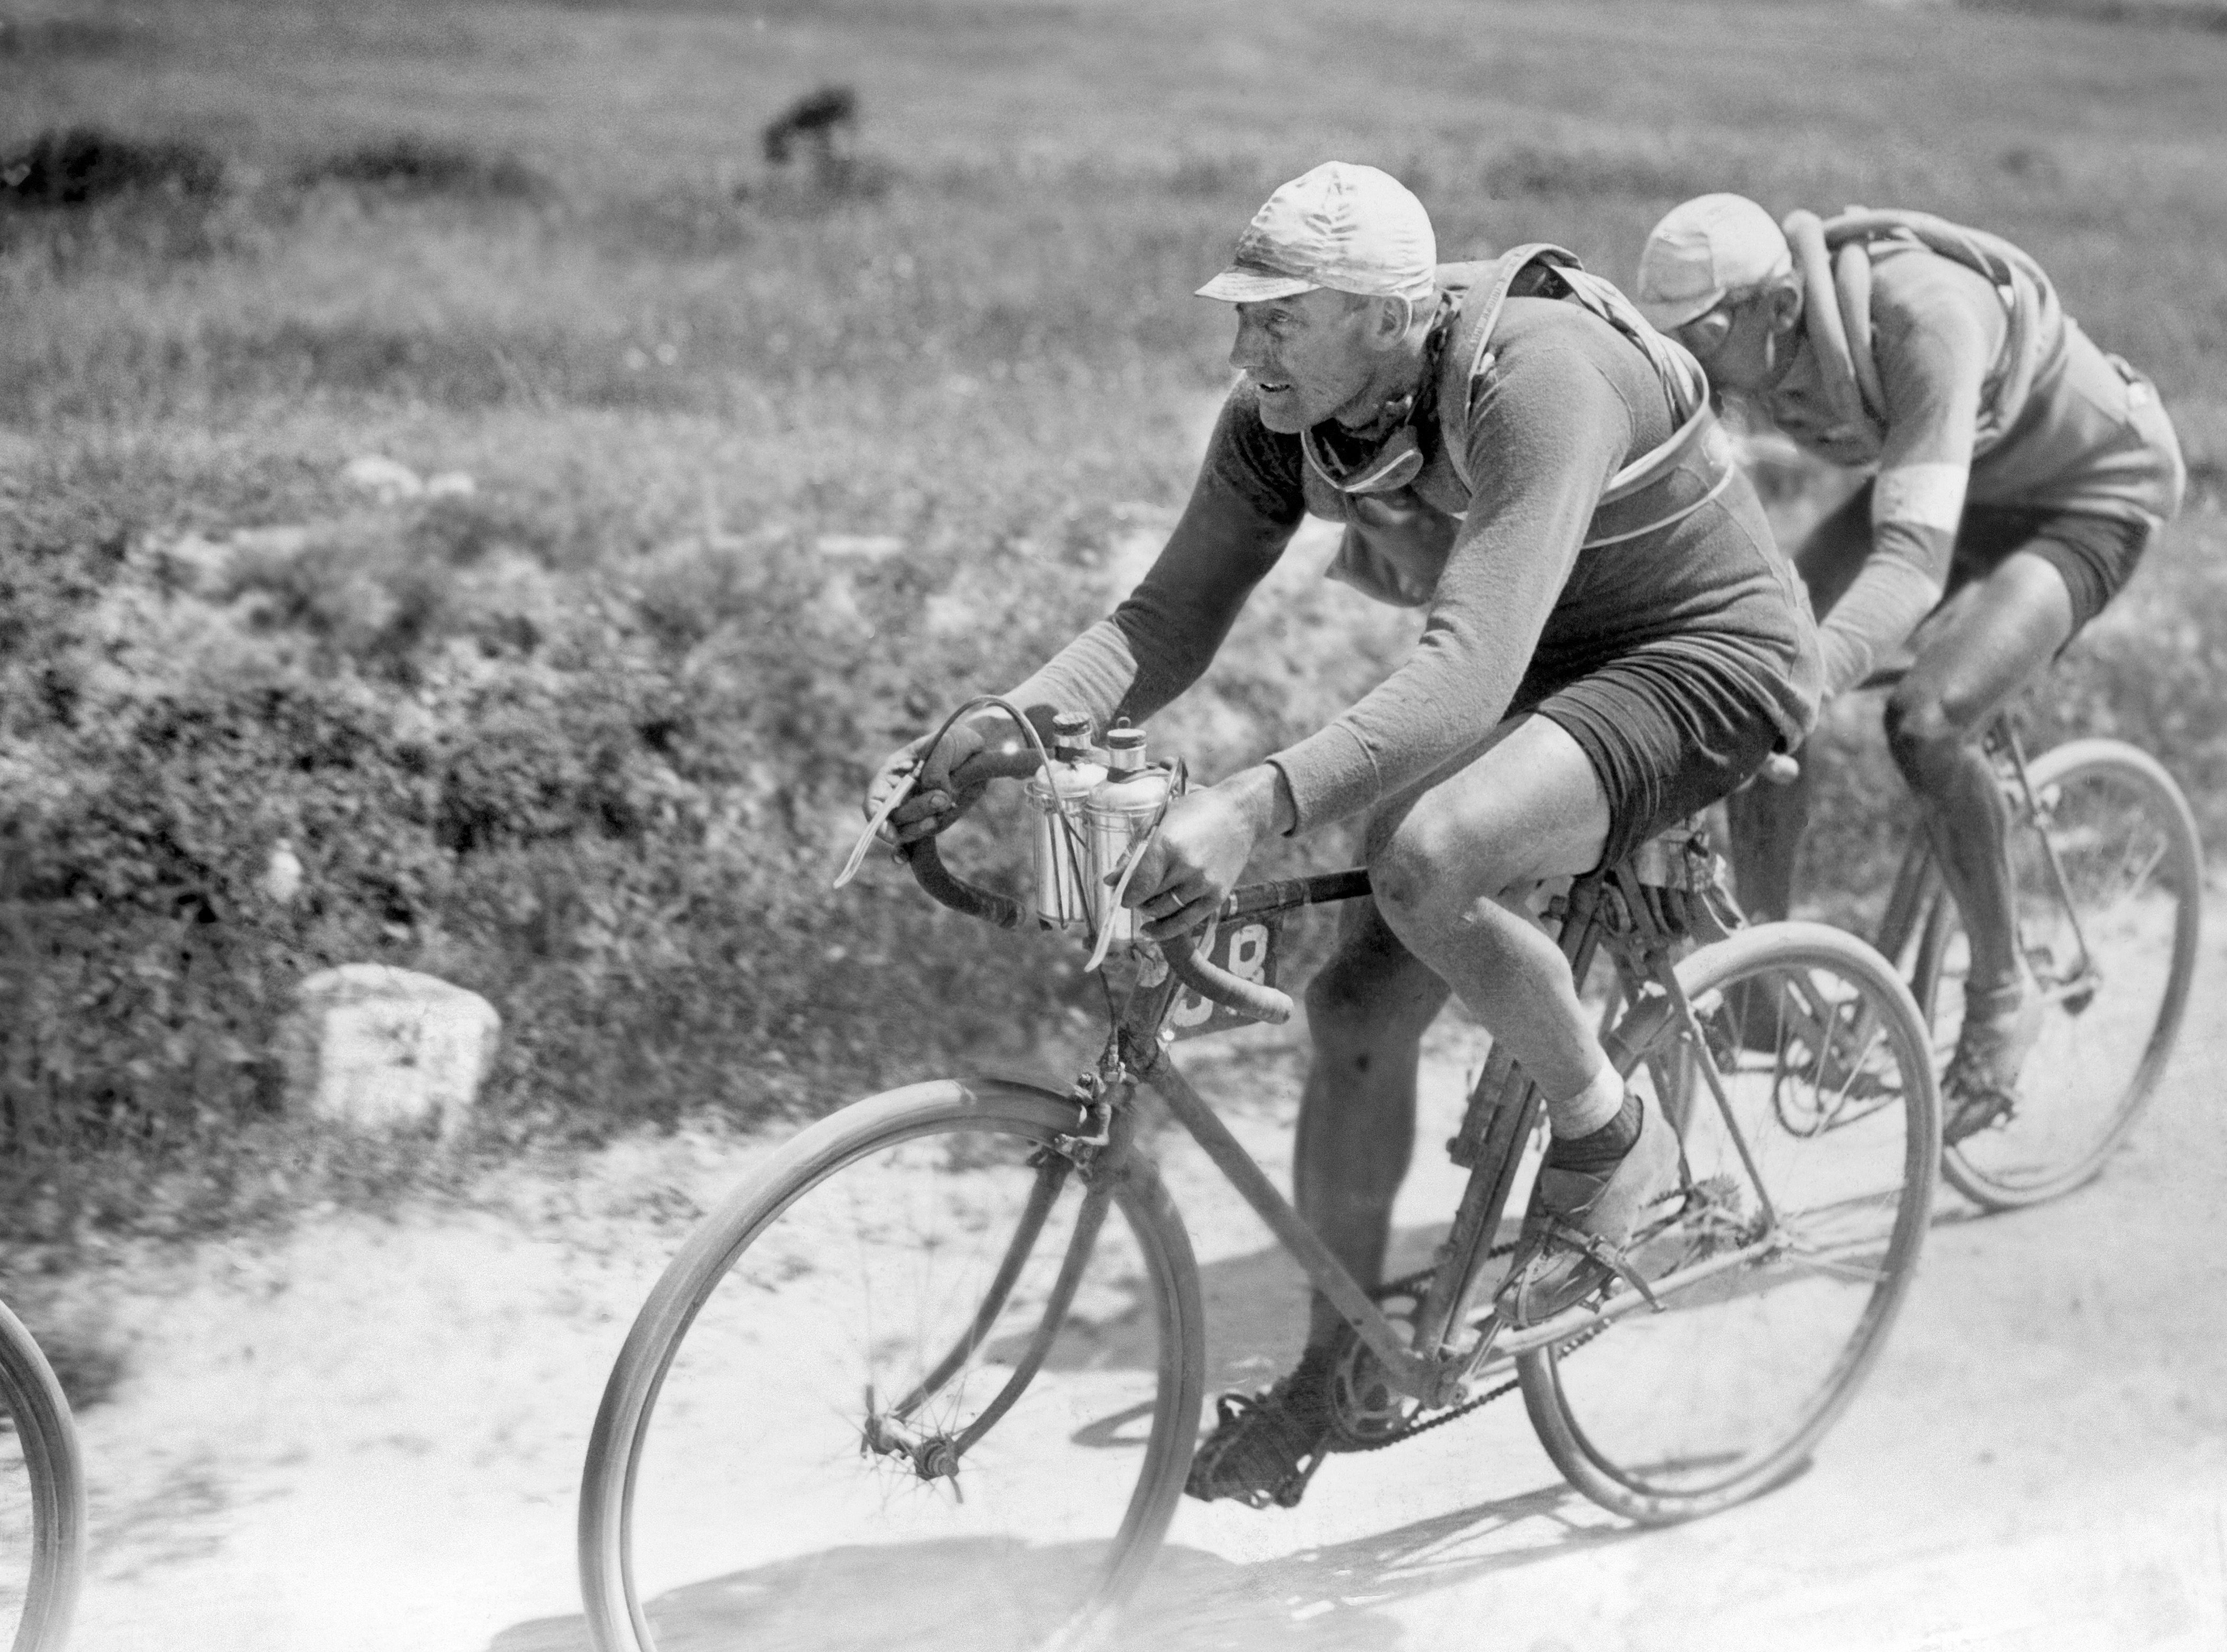 List of teams and cyclists in the 1909 Tour de France